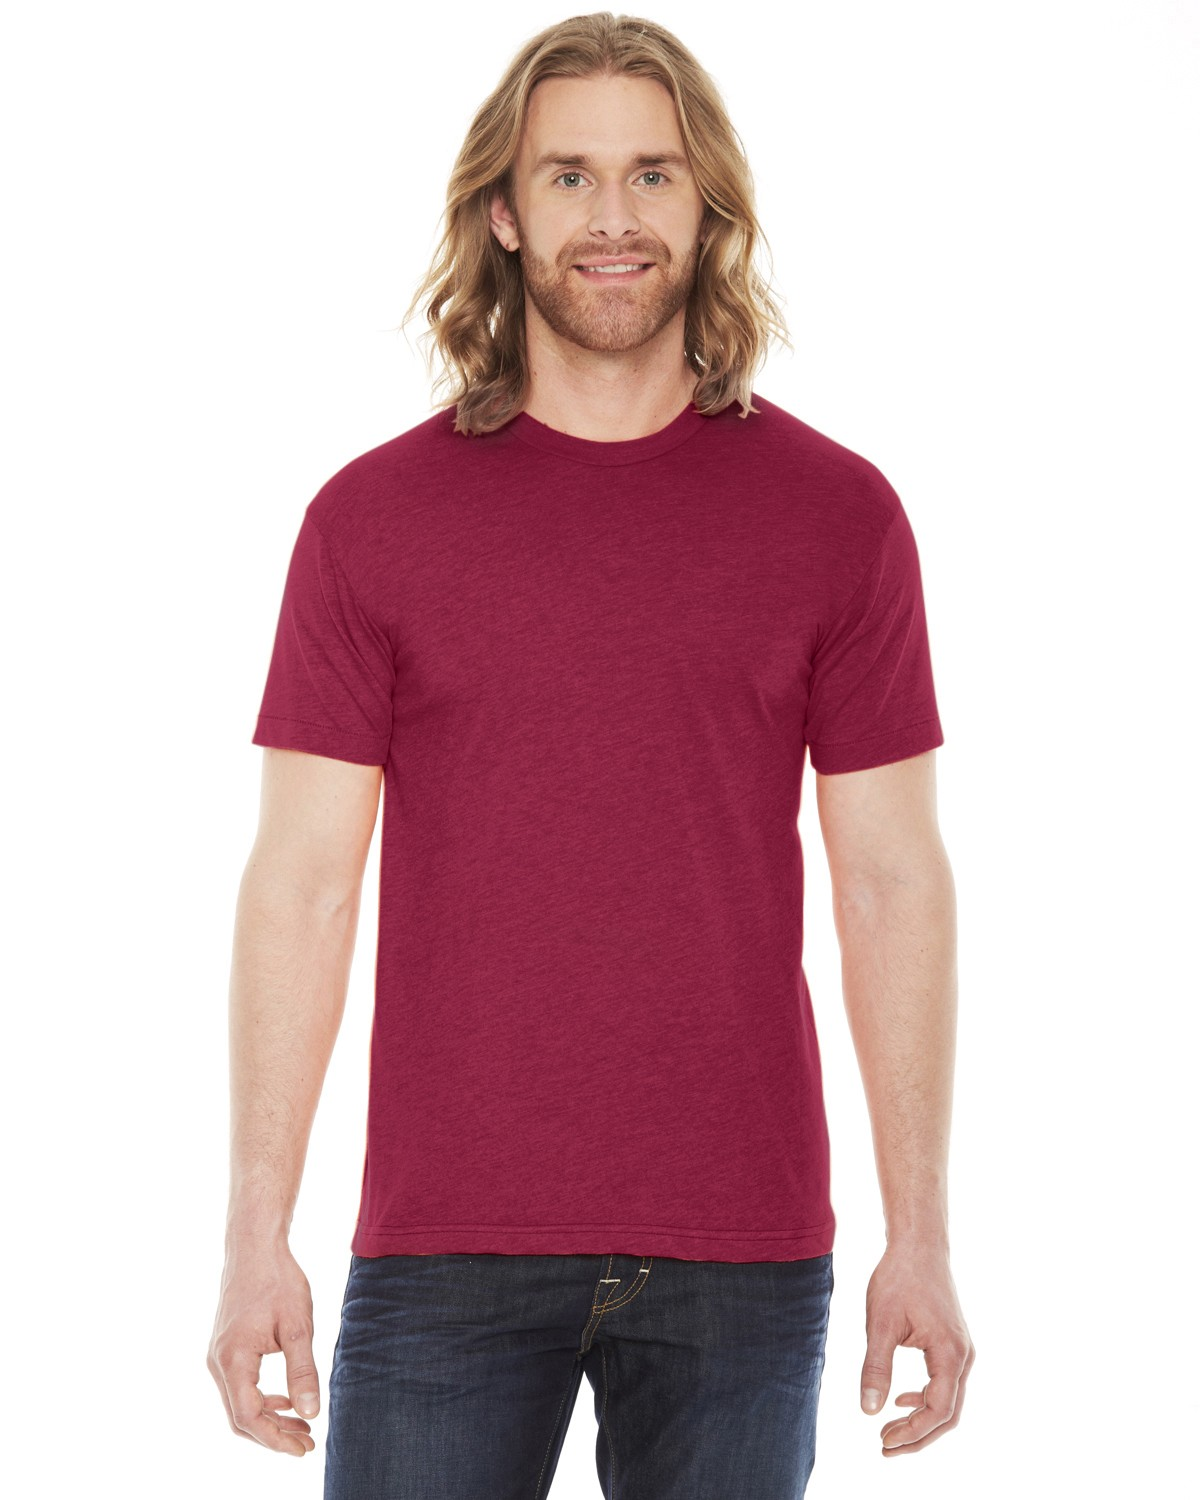 BB401W American Apparel HEATHER RED